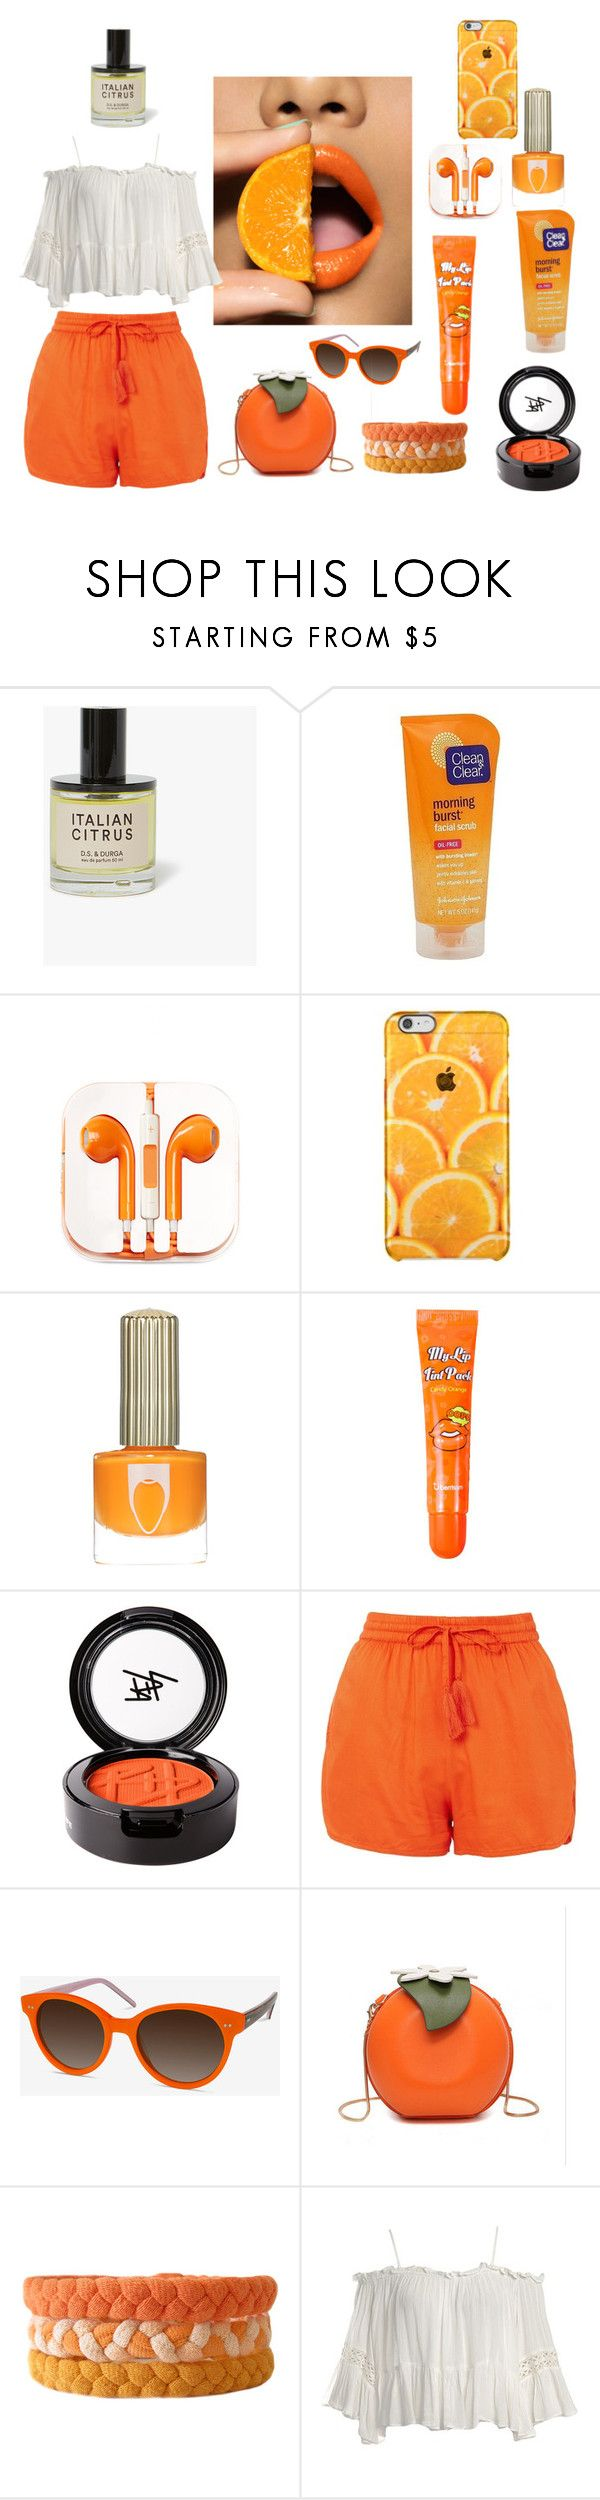 """Foodie Fashion: Orange You Glad?"" by makennadelaneypowell on Polyvore featuring Clean & Clear, PhunkeeTree, BERRISOM, Beauty Is Life, Topshop, EyeBuyDirect.com and Sans Souci"